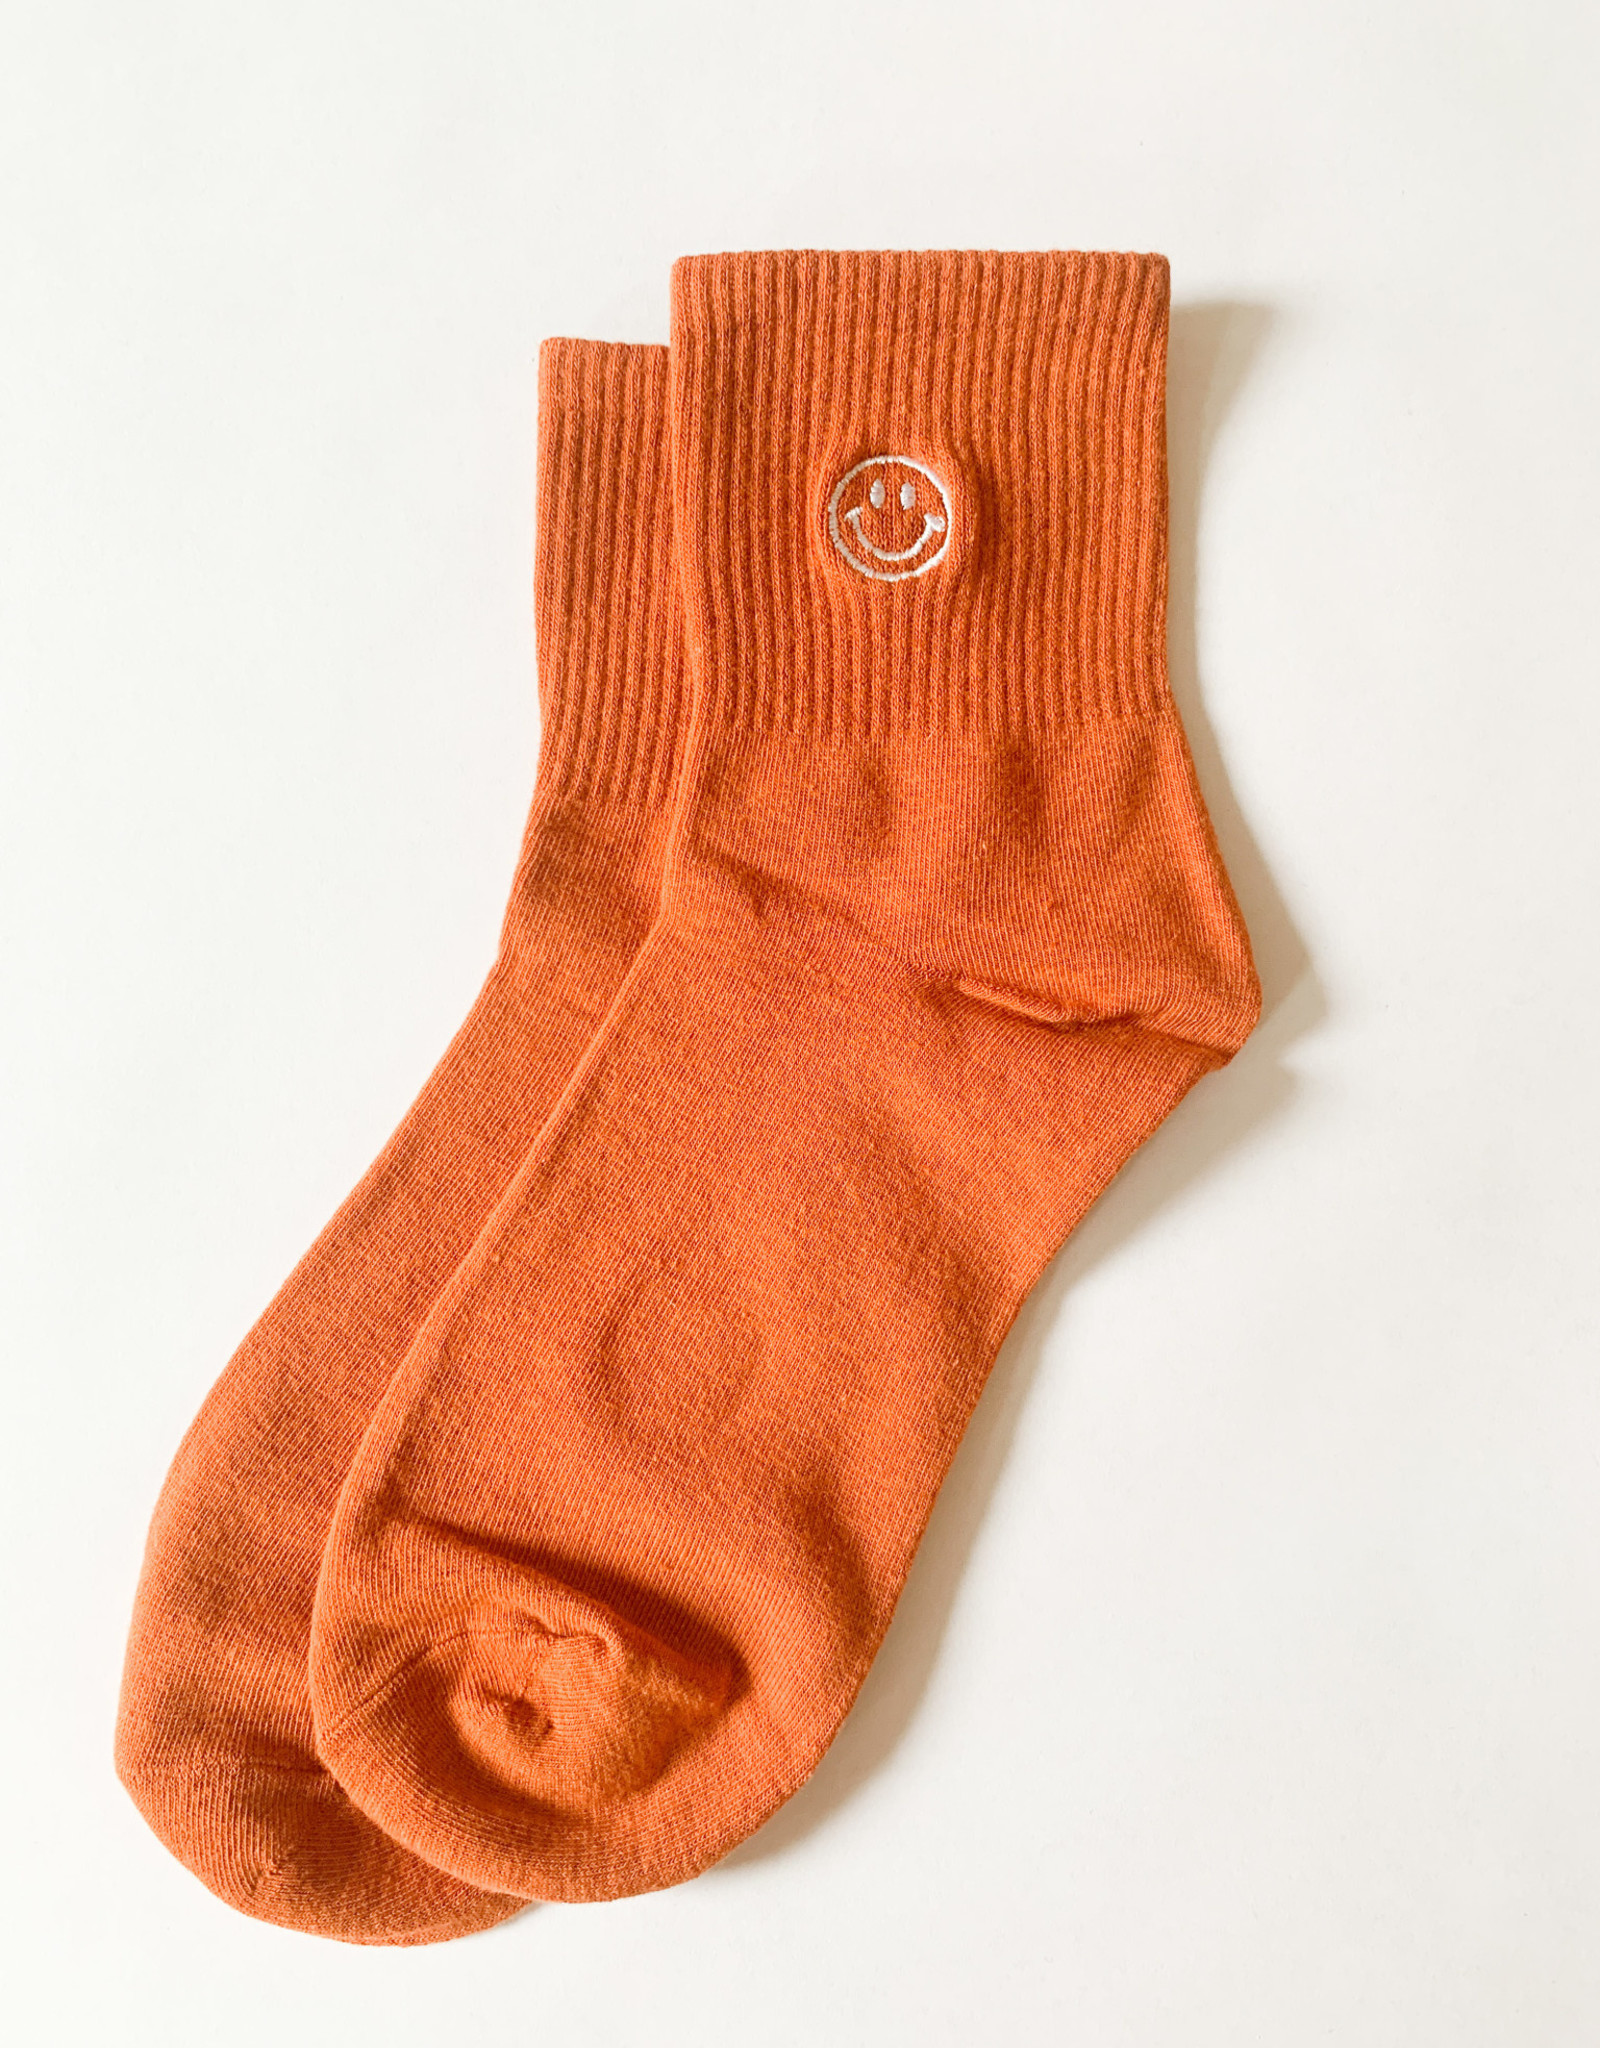 Stay Forever | Smiley Face Socks - Persimmon